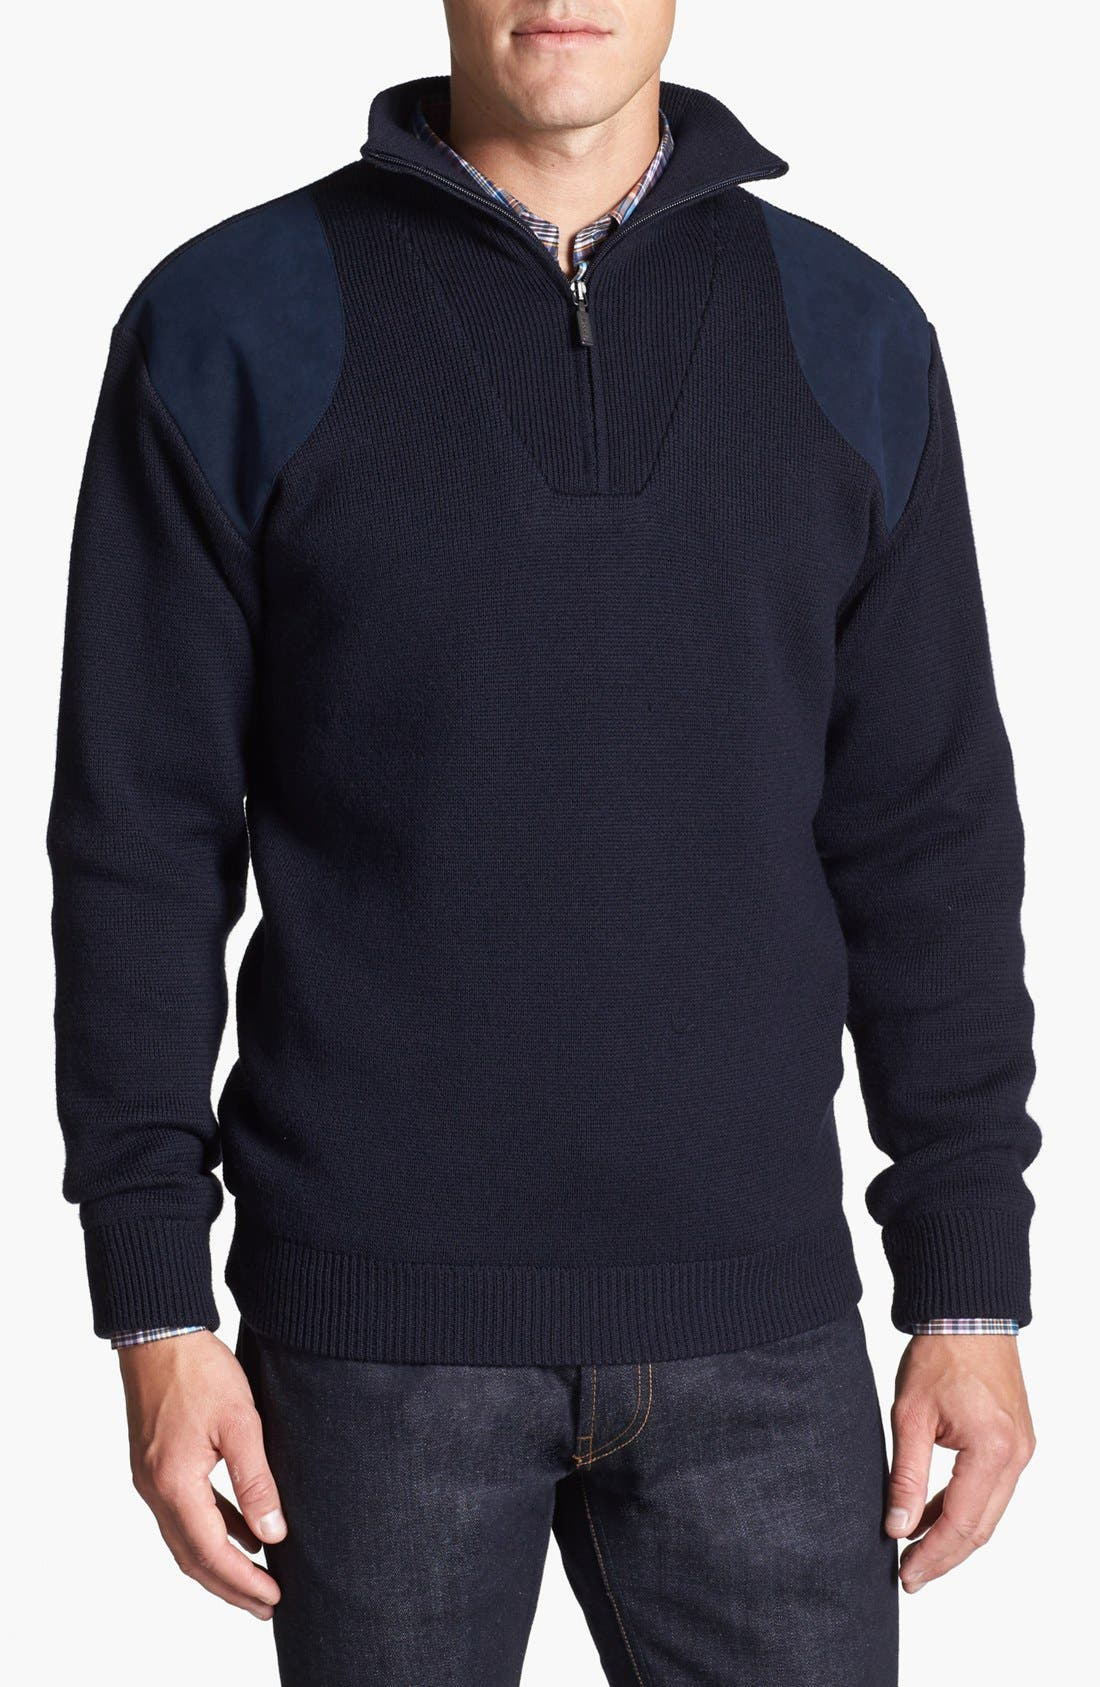 Main Image - Barbour 'Storm' Relaxed Fit Half-Zip Merino Wool Sweater